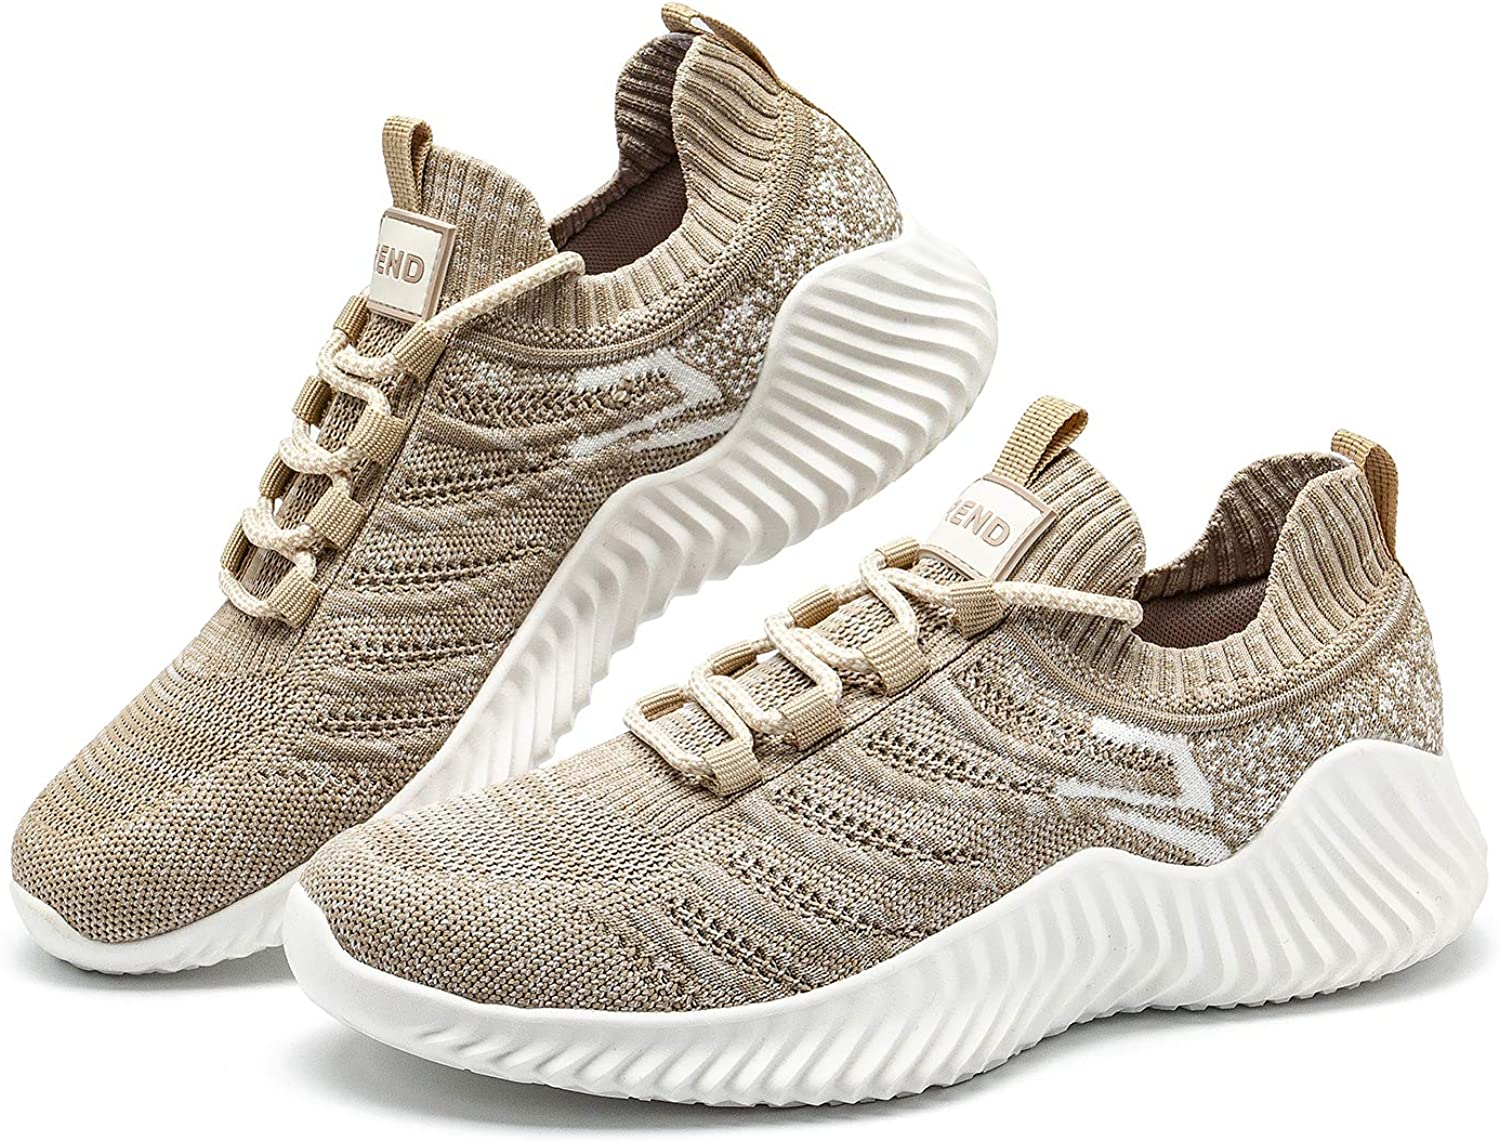 COOPCUP Ranking TOP7 Men Sports Shoes Running Sneakers Financial sales sale Sho Breathable Outdoor